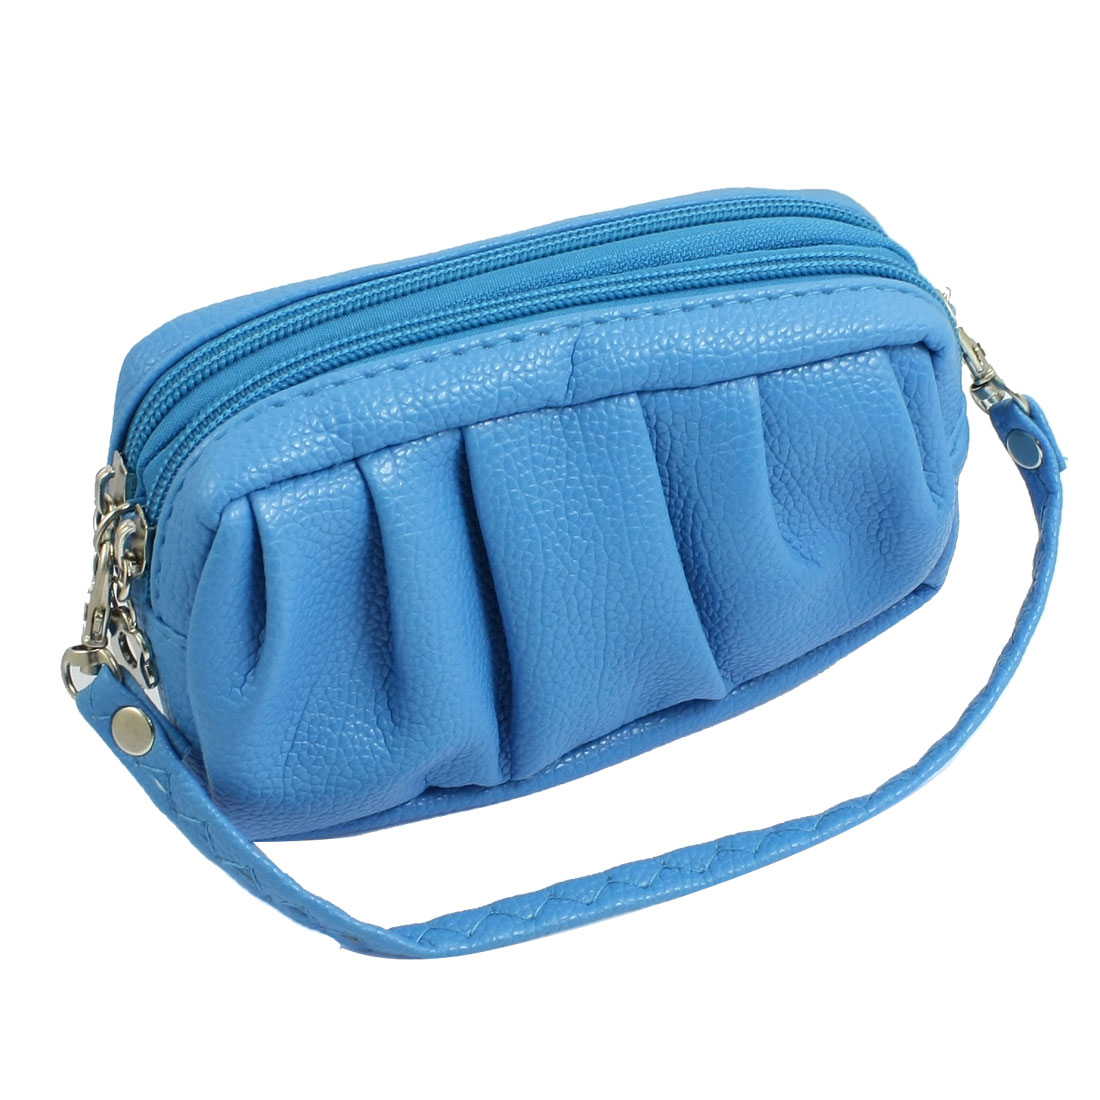 Women Sky Blue Ruched Faux Leather Handbag Purse w Lobster Clasp Strap